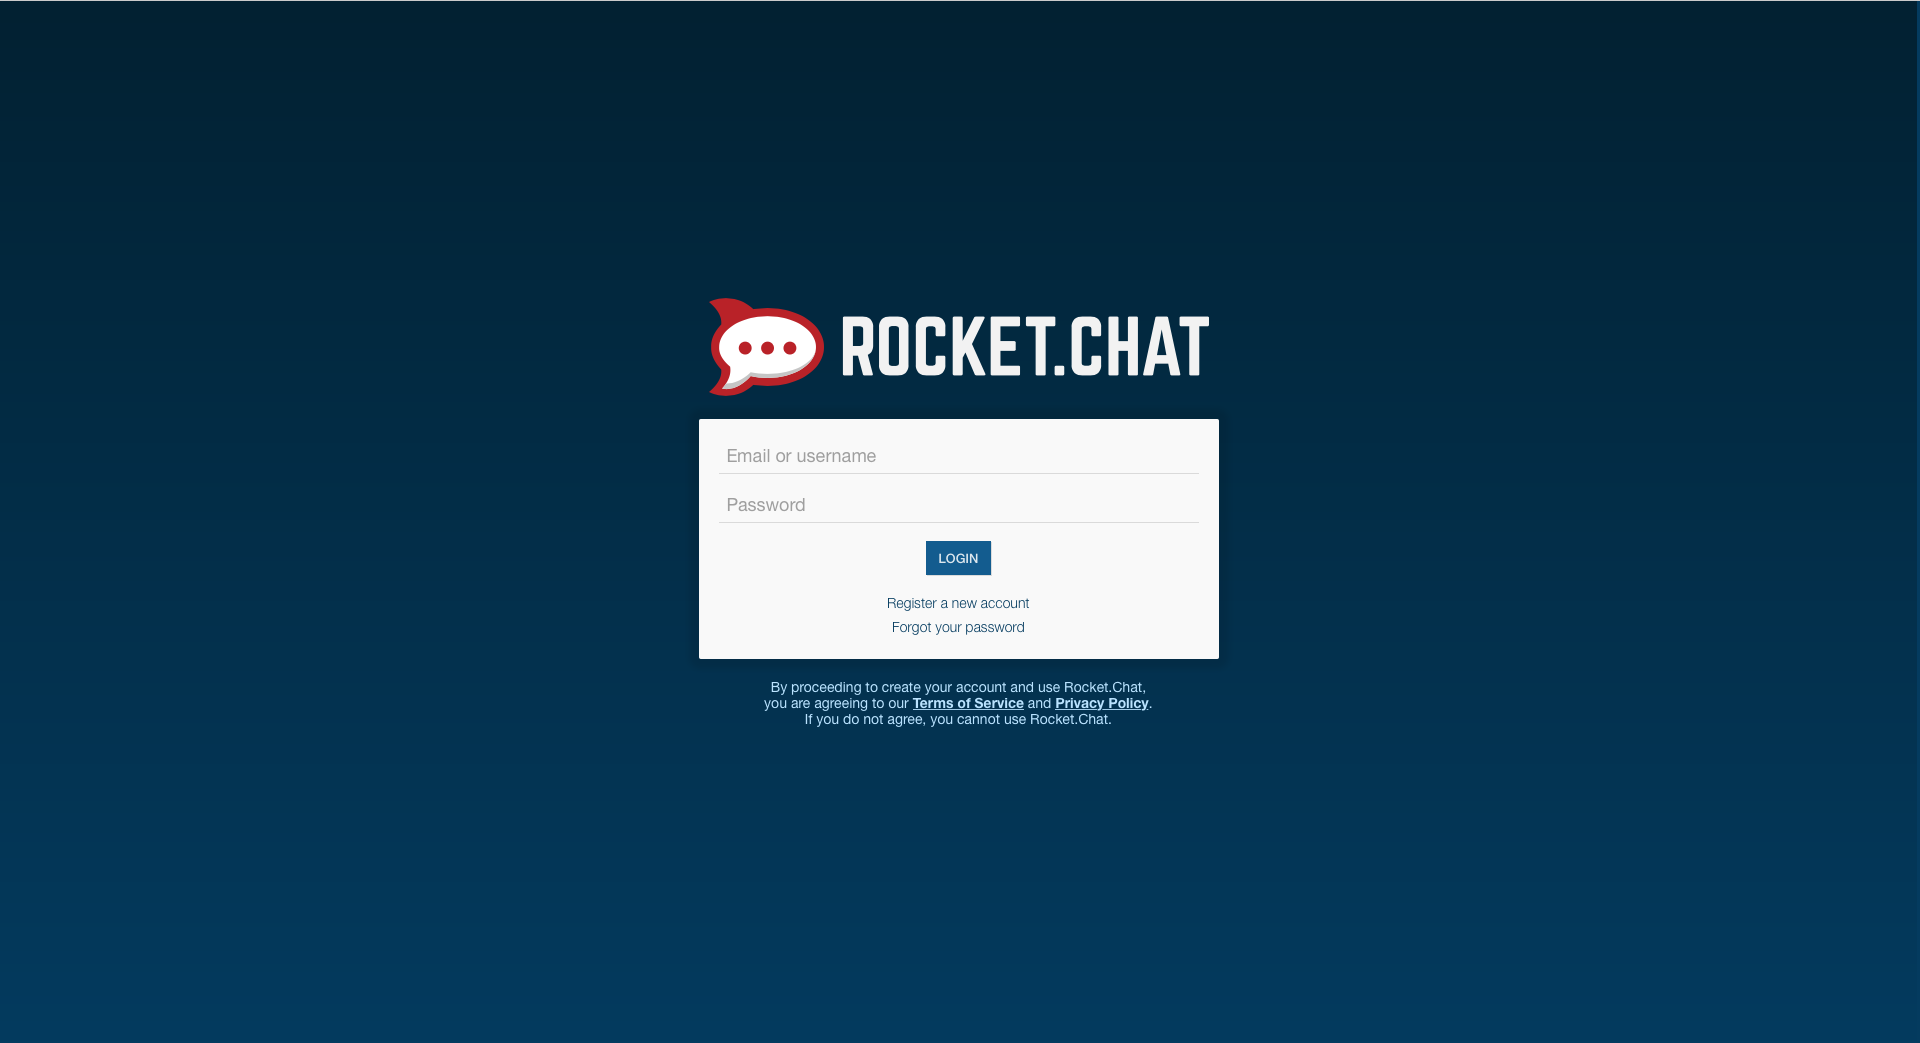 Rocket.Chat's login page